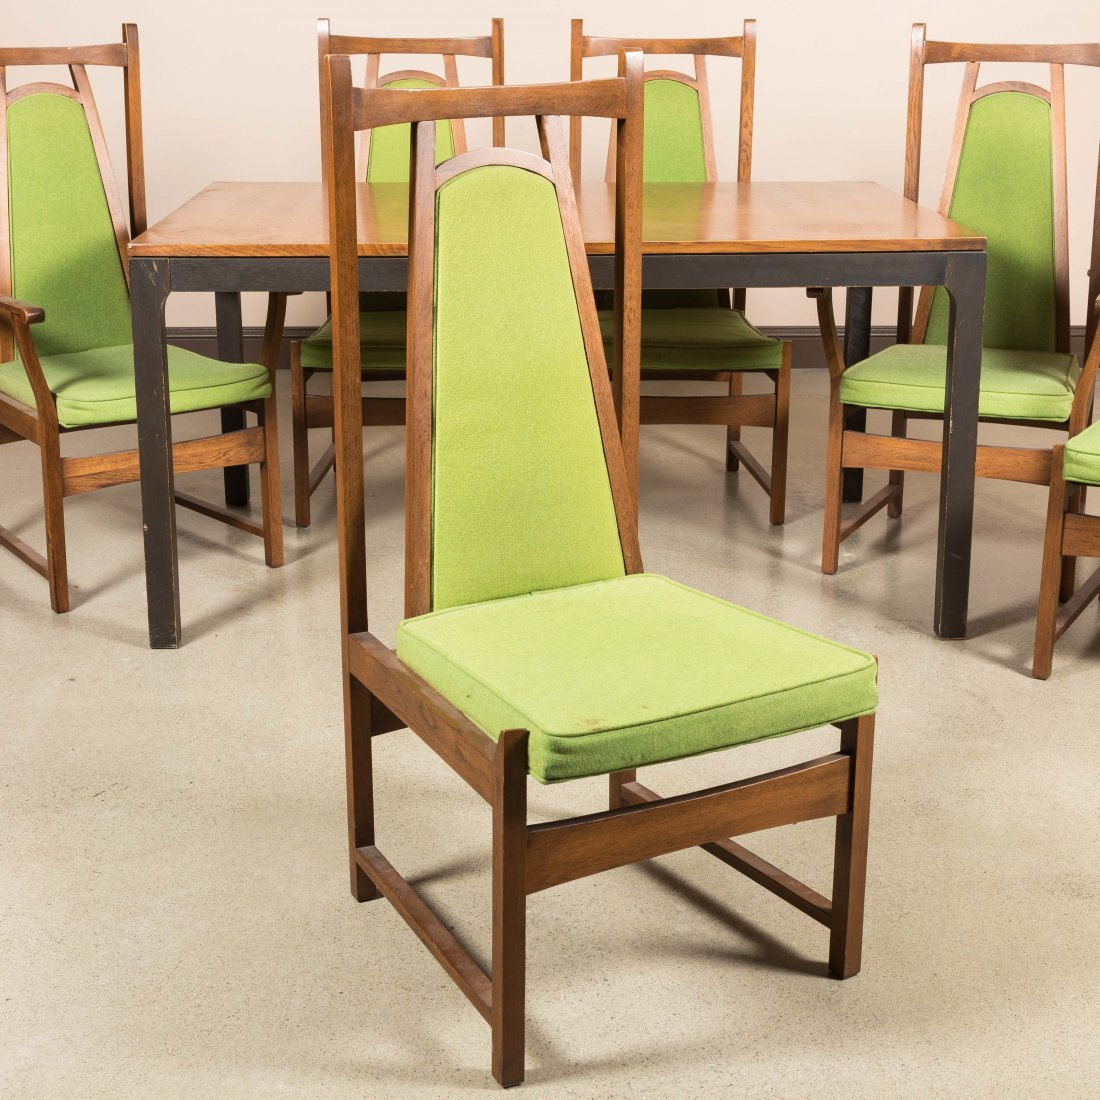 Six Lane Altavista Chairs and Dining Table - 2